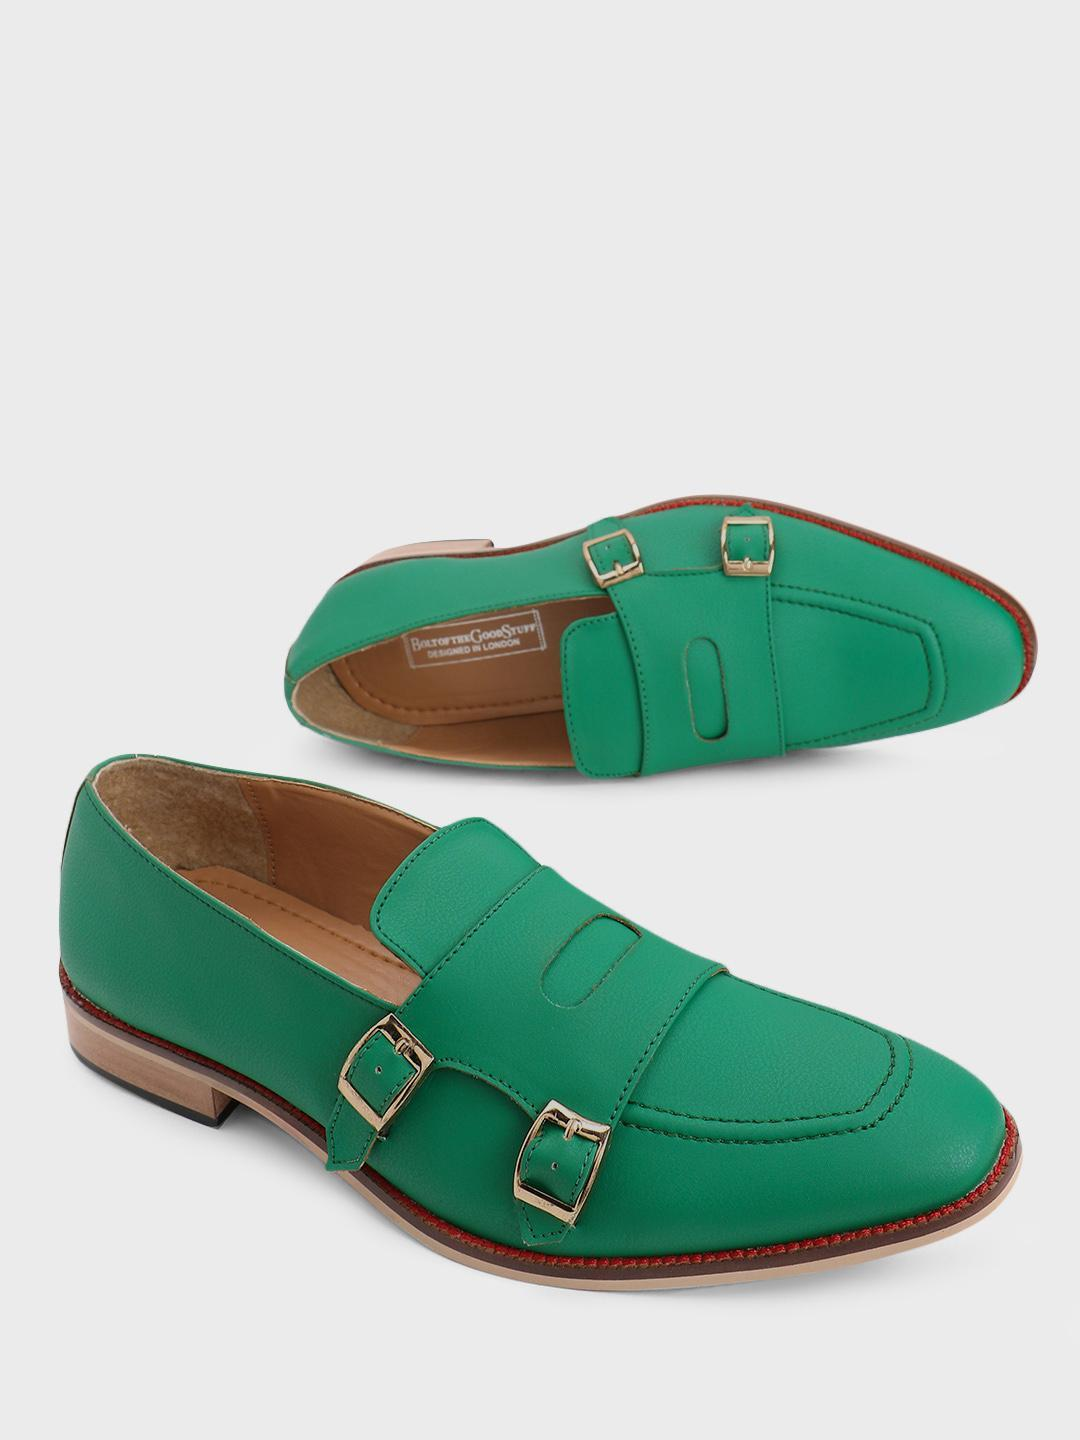 Bolt Of The Good Stuff Green Double Monk Strap Loafers 1